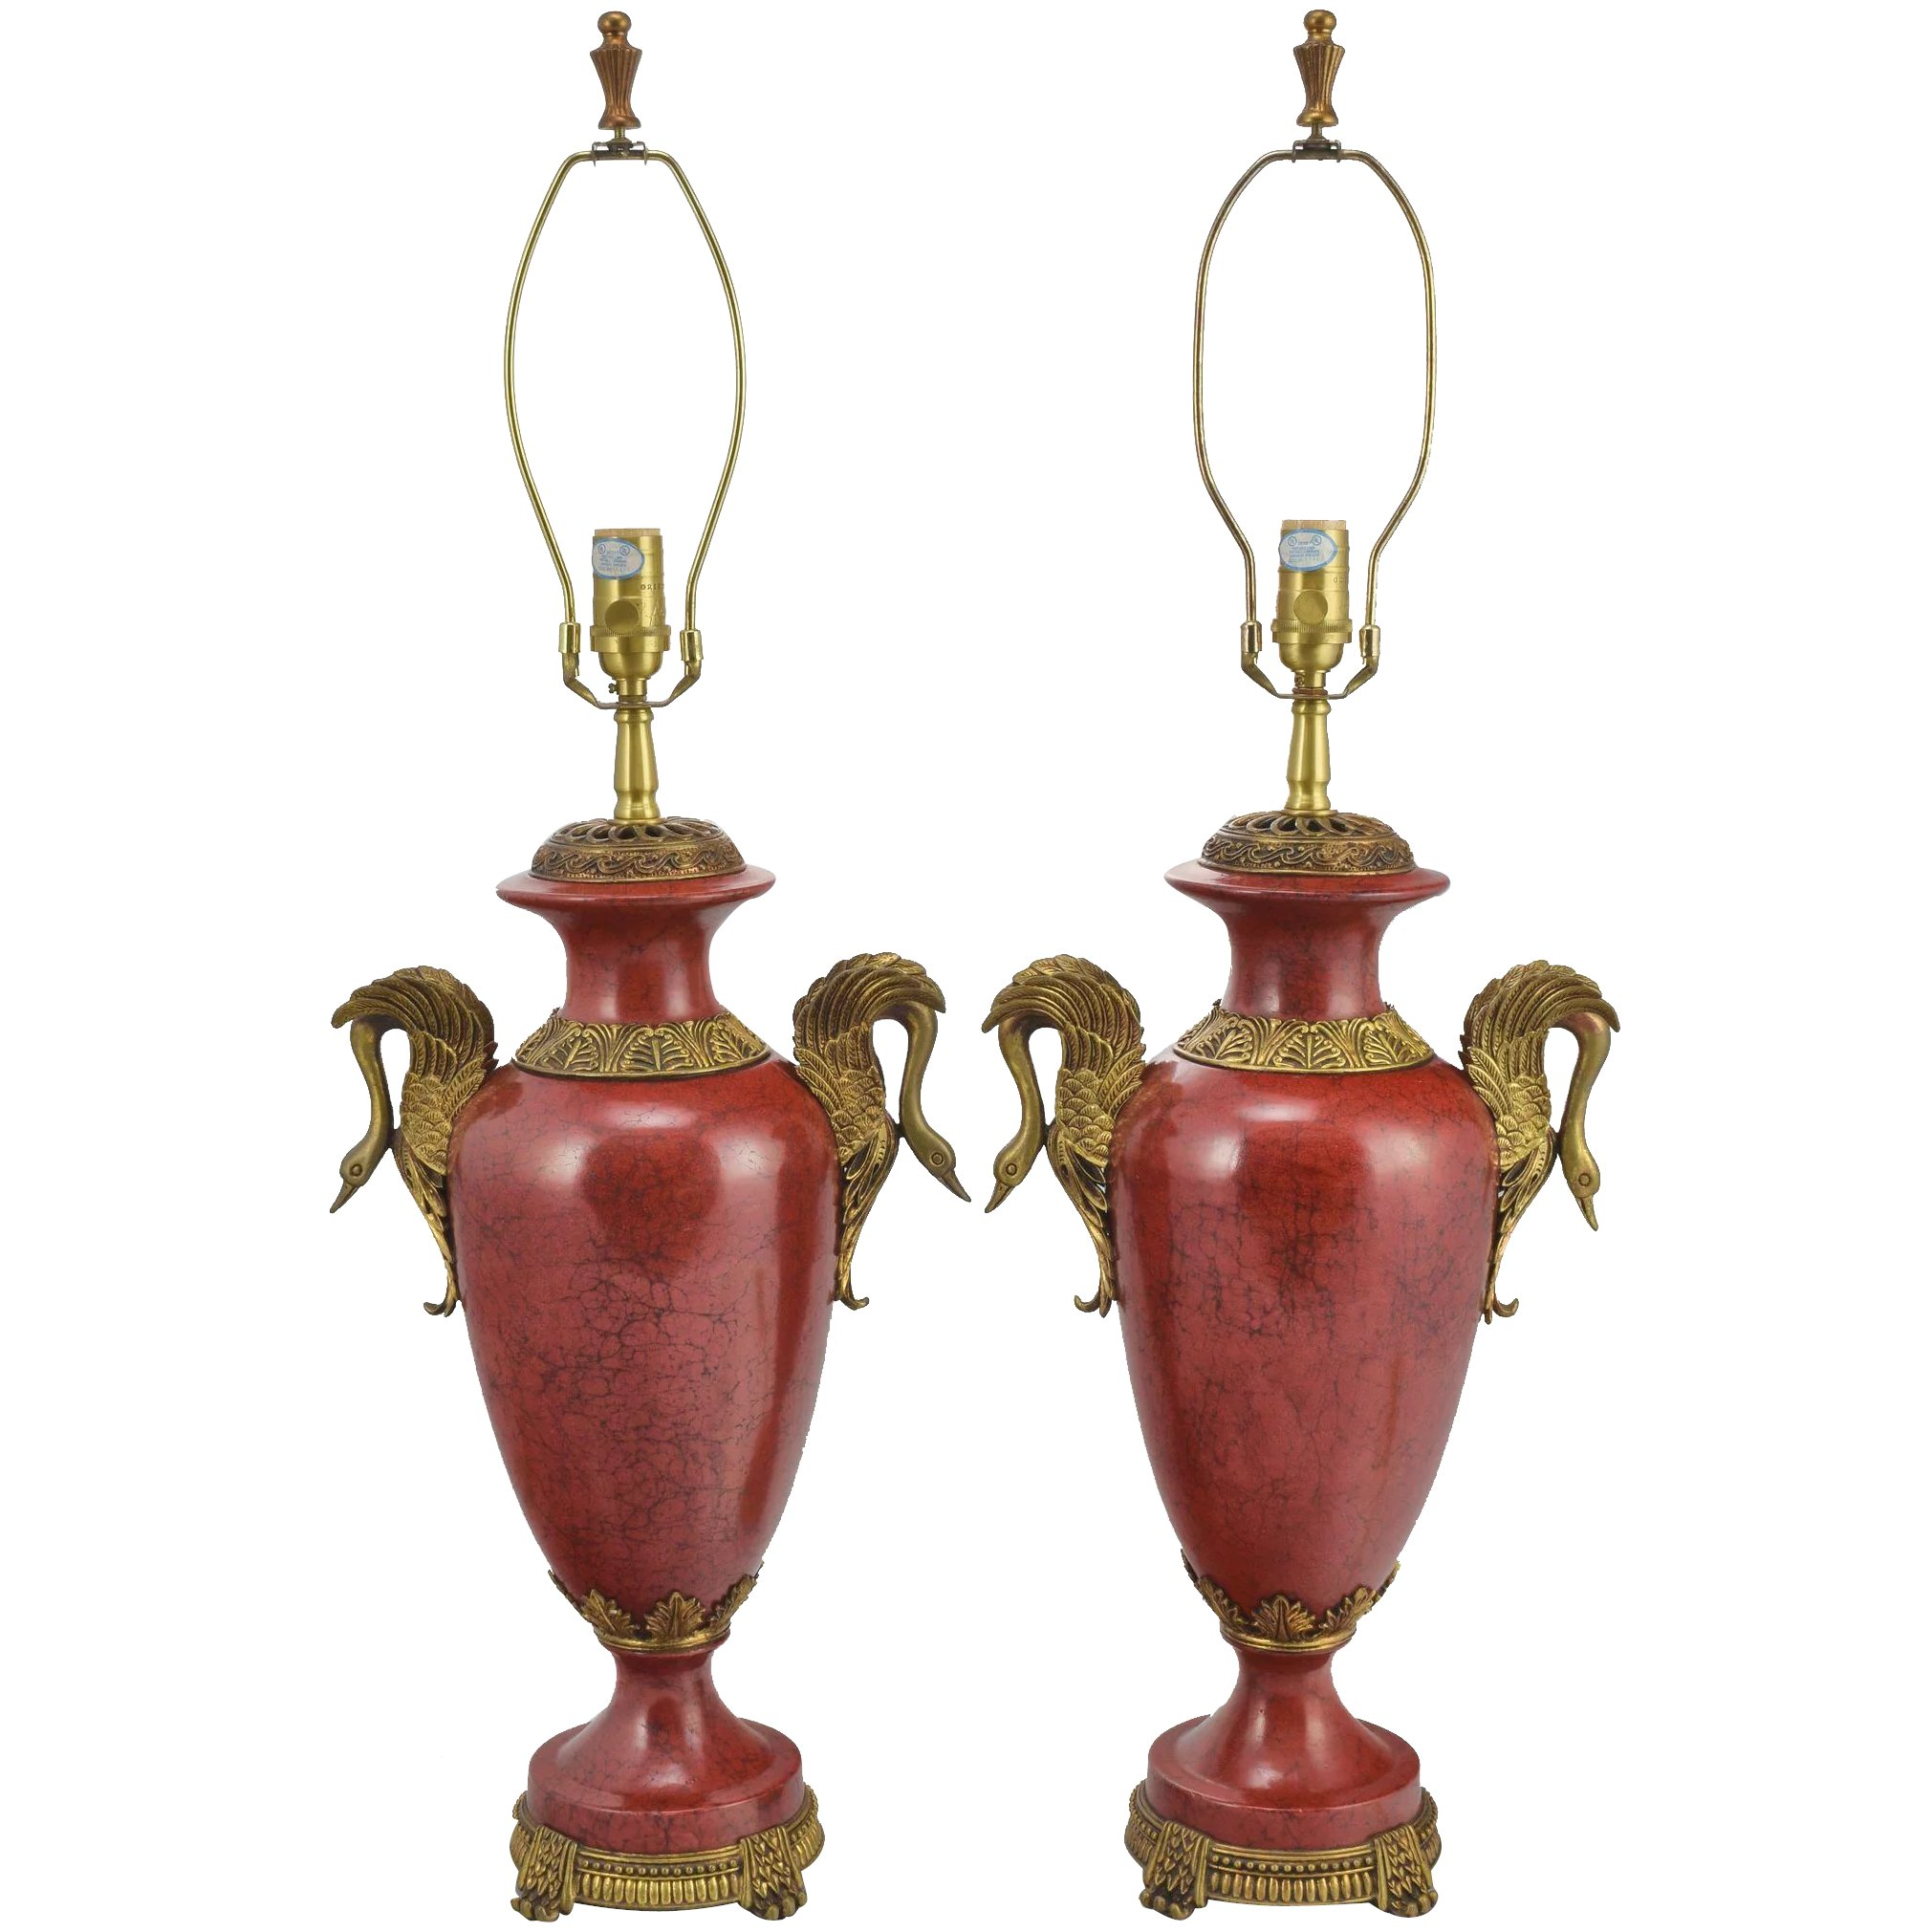 pair oriental accent lamps faux red marble and brass with swans full table click expand pottery barn beds nautical theme bathroom trestle farm bunnings legs pink patio umbrella